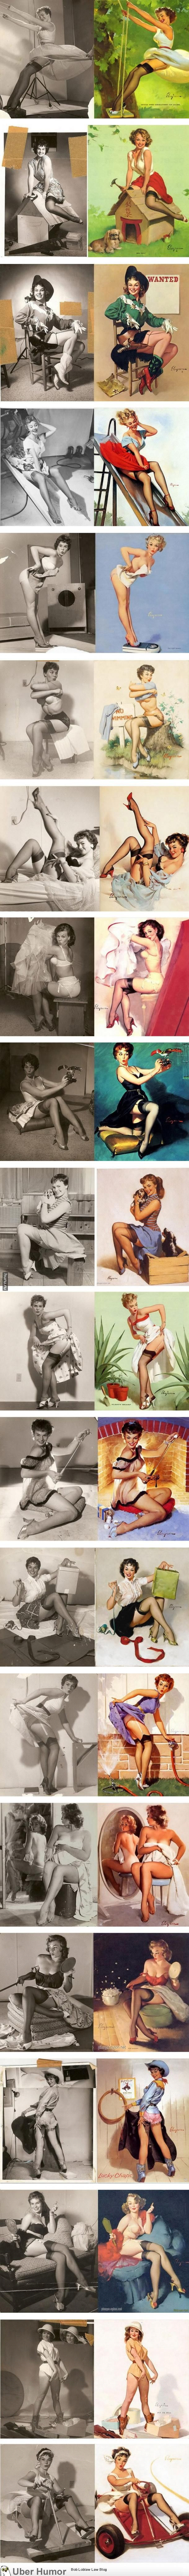 lovely pinup girls - the contrast between the model's set-up and the final image is striking in it's lack of glamor.